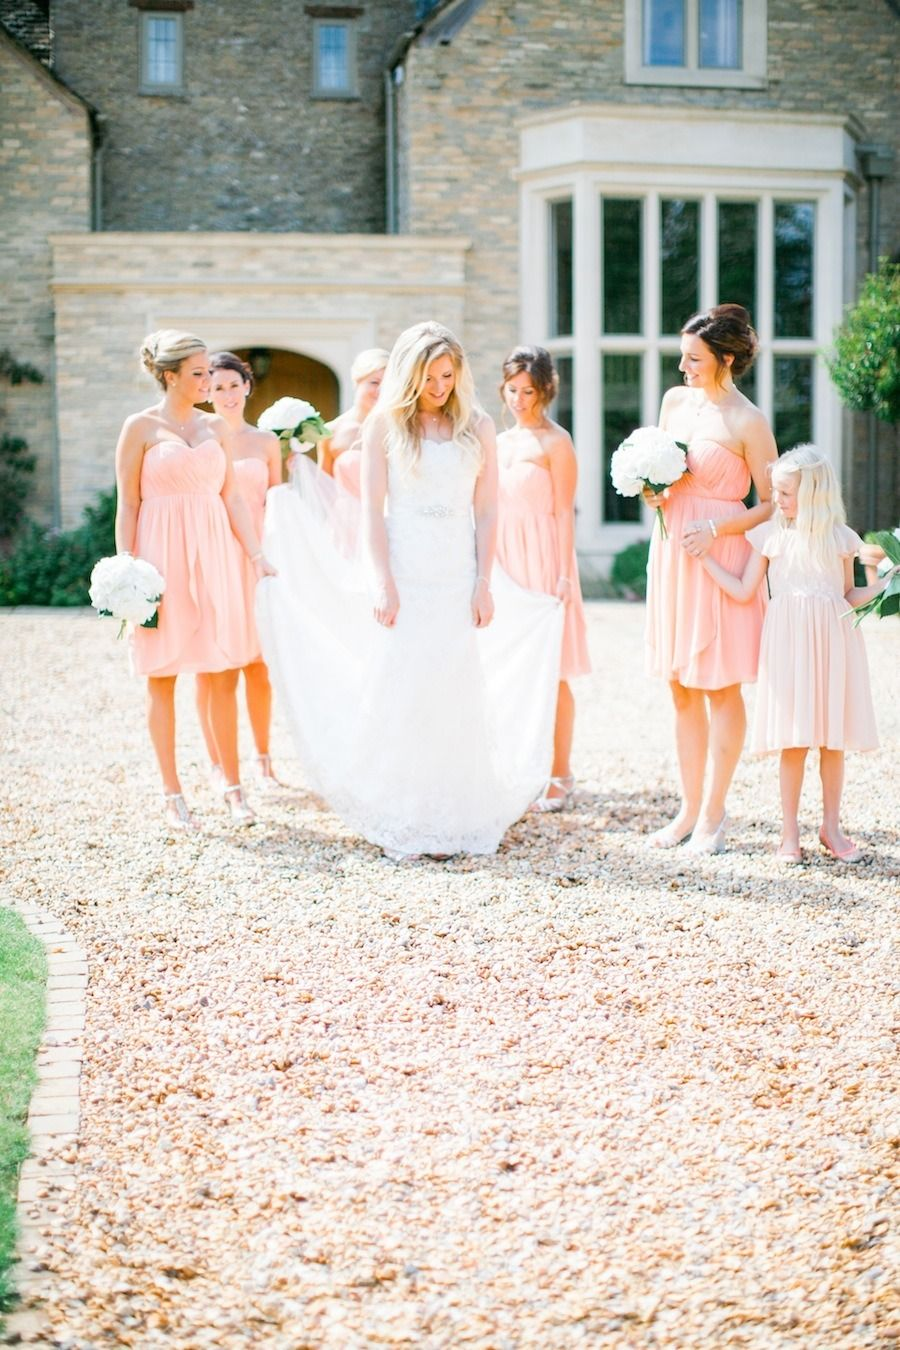 Blush Pink Bridesmaid Dresses With Simple White Wedding Flowers